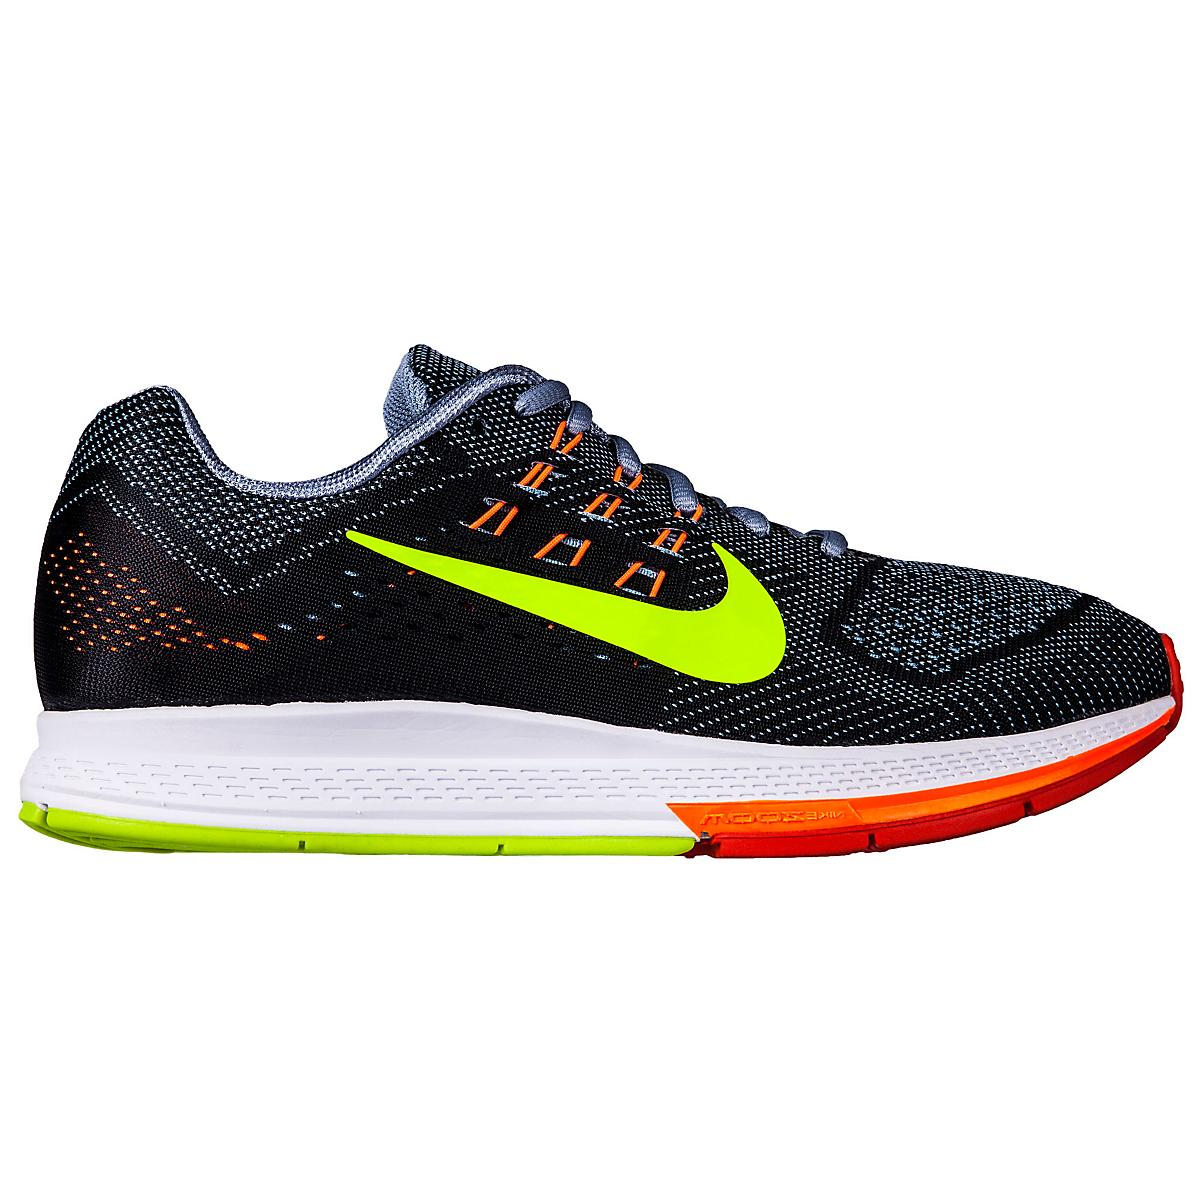 f97478cb5807 Mens Nike Air Zoom Structure 18 Running Shoe at Road Runner Sports